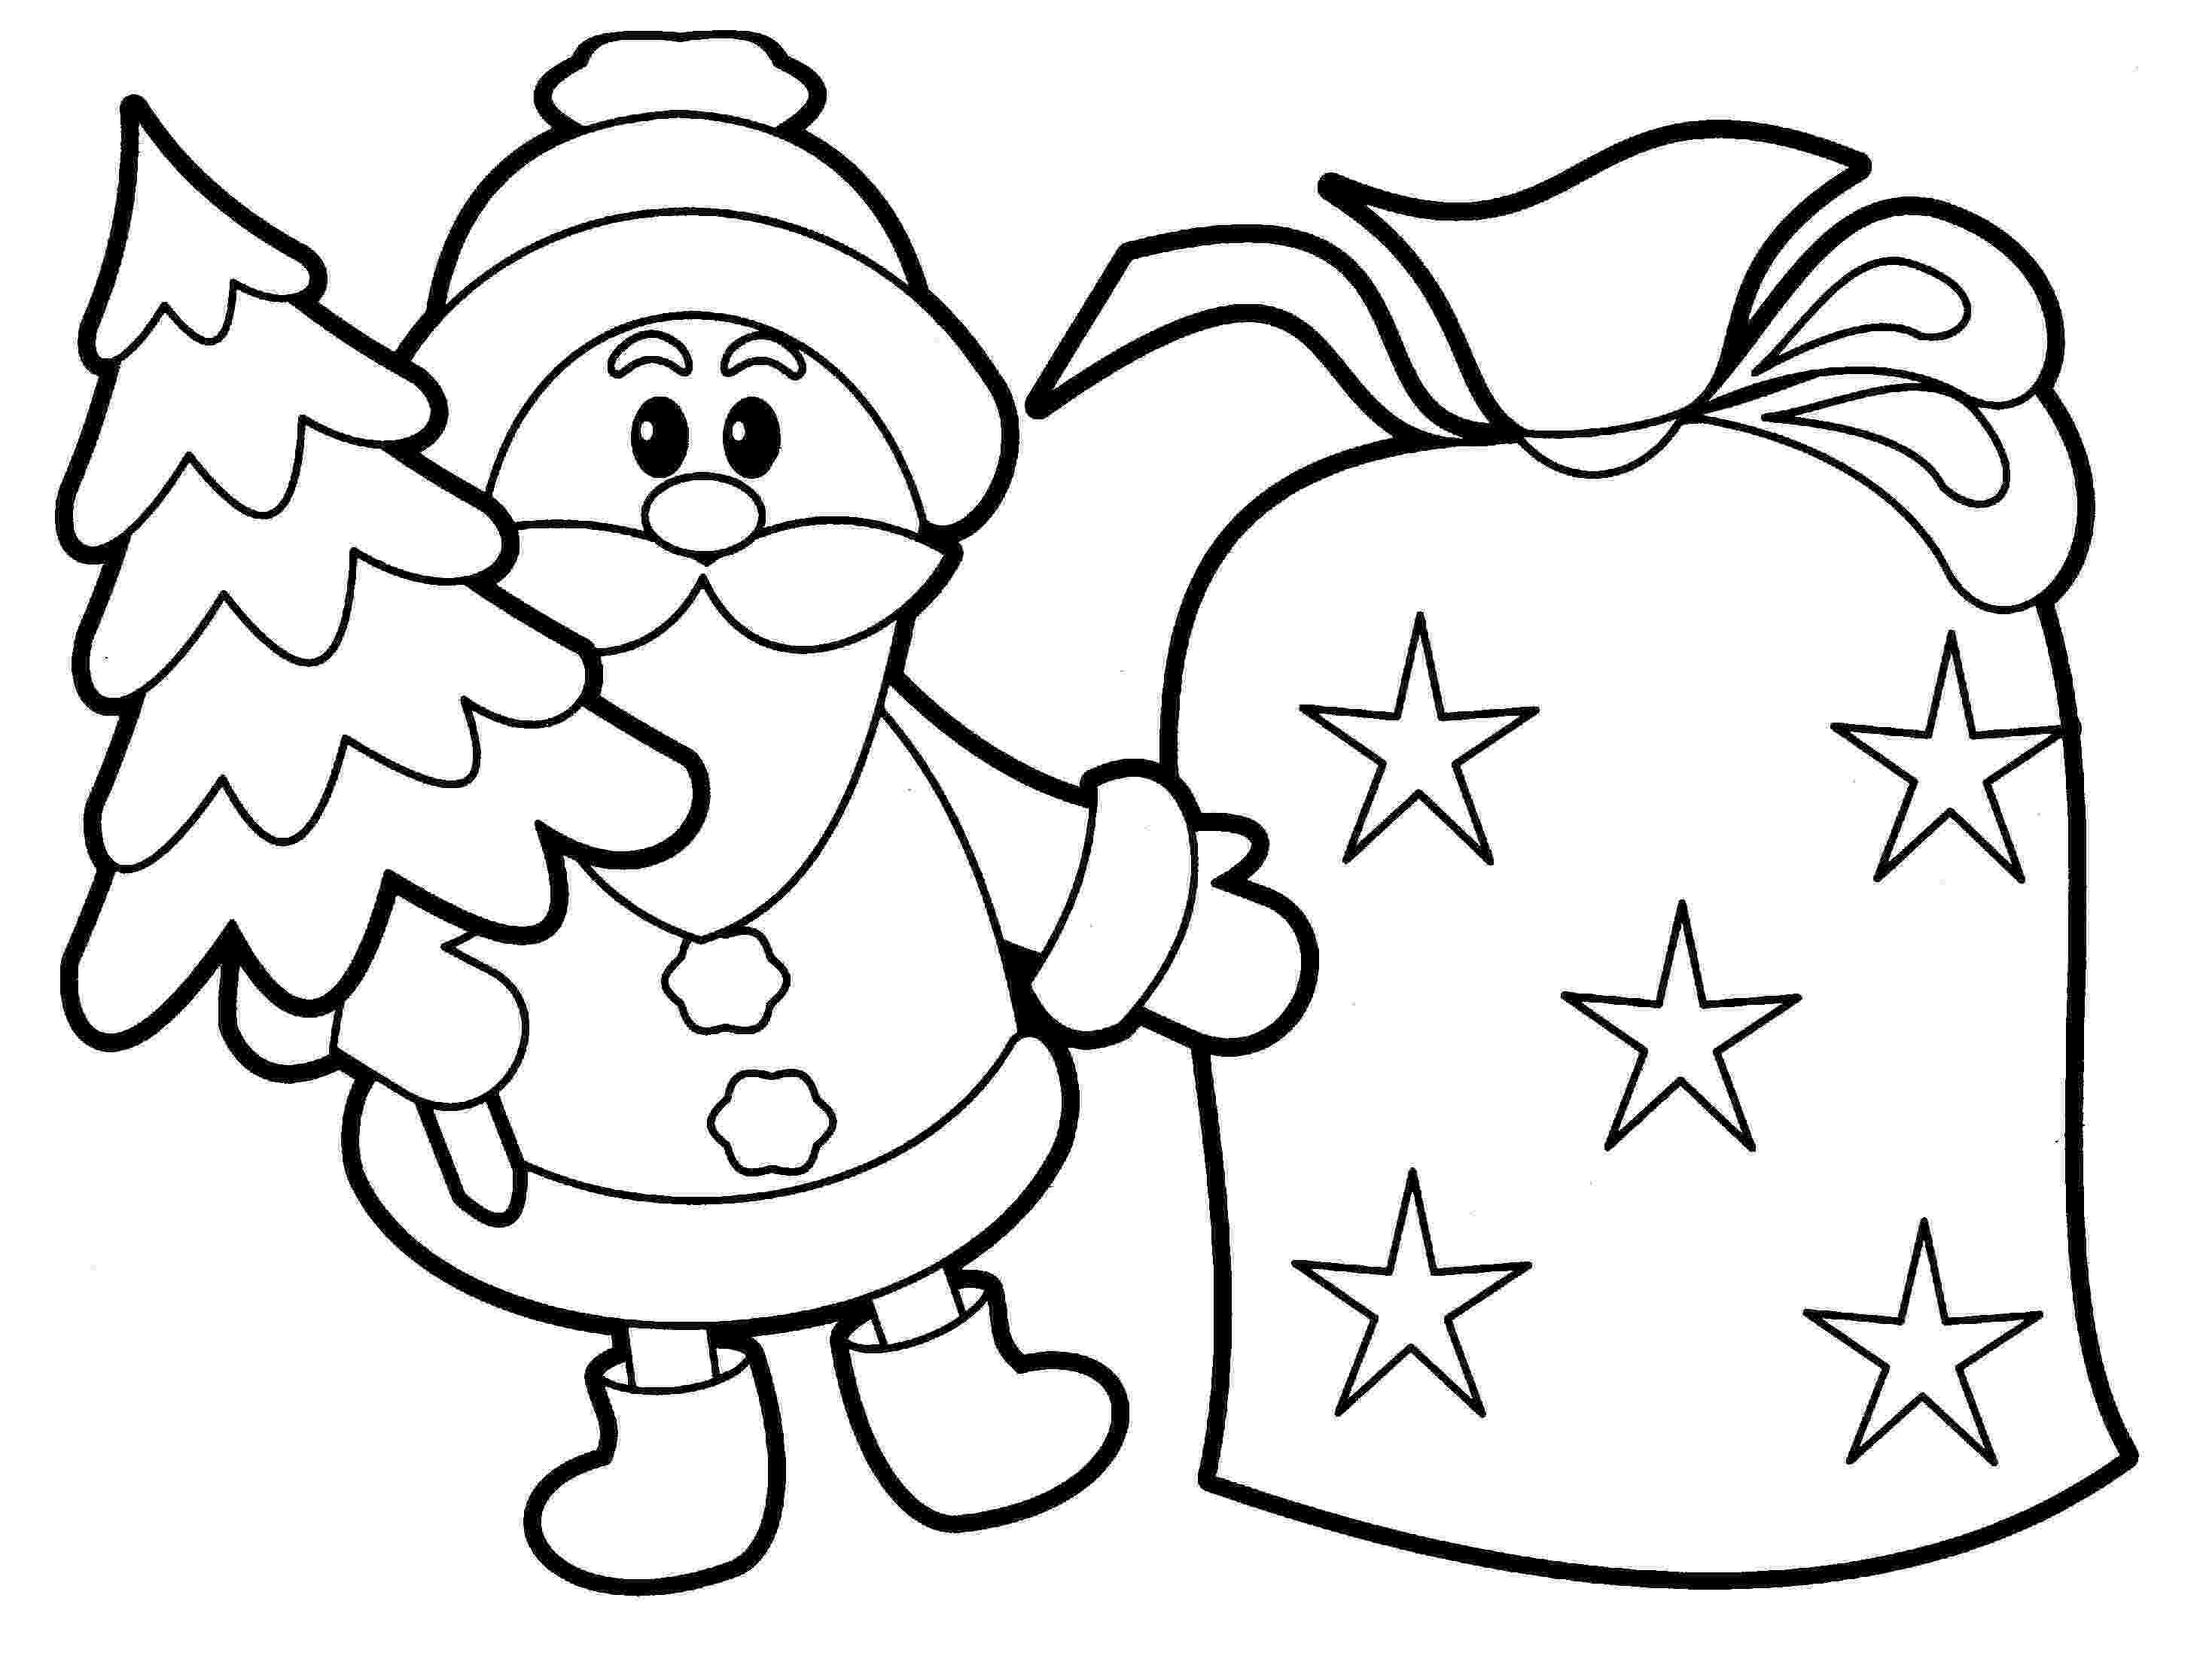 printable christmas coloring pages for kindergarten preschool christian christmas coloring sheets coloringsnet kindergarten christmas pages for coloring printable